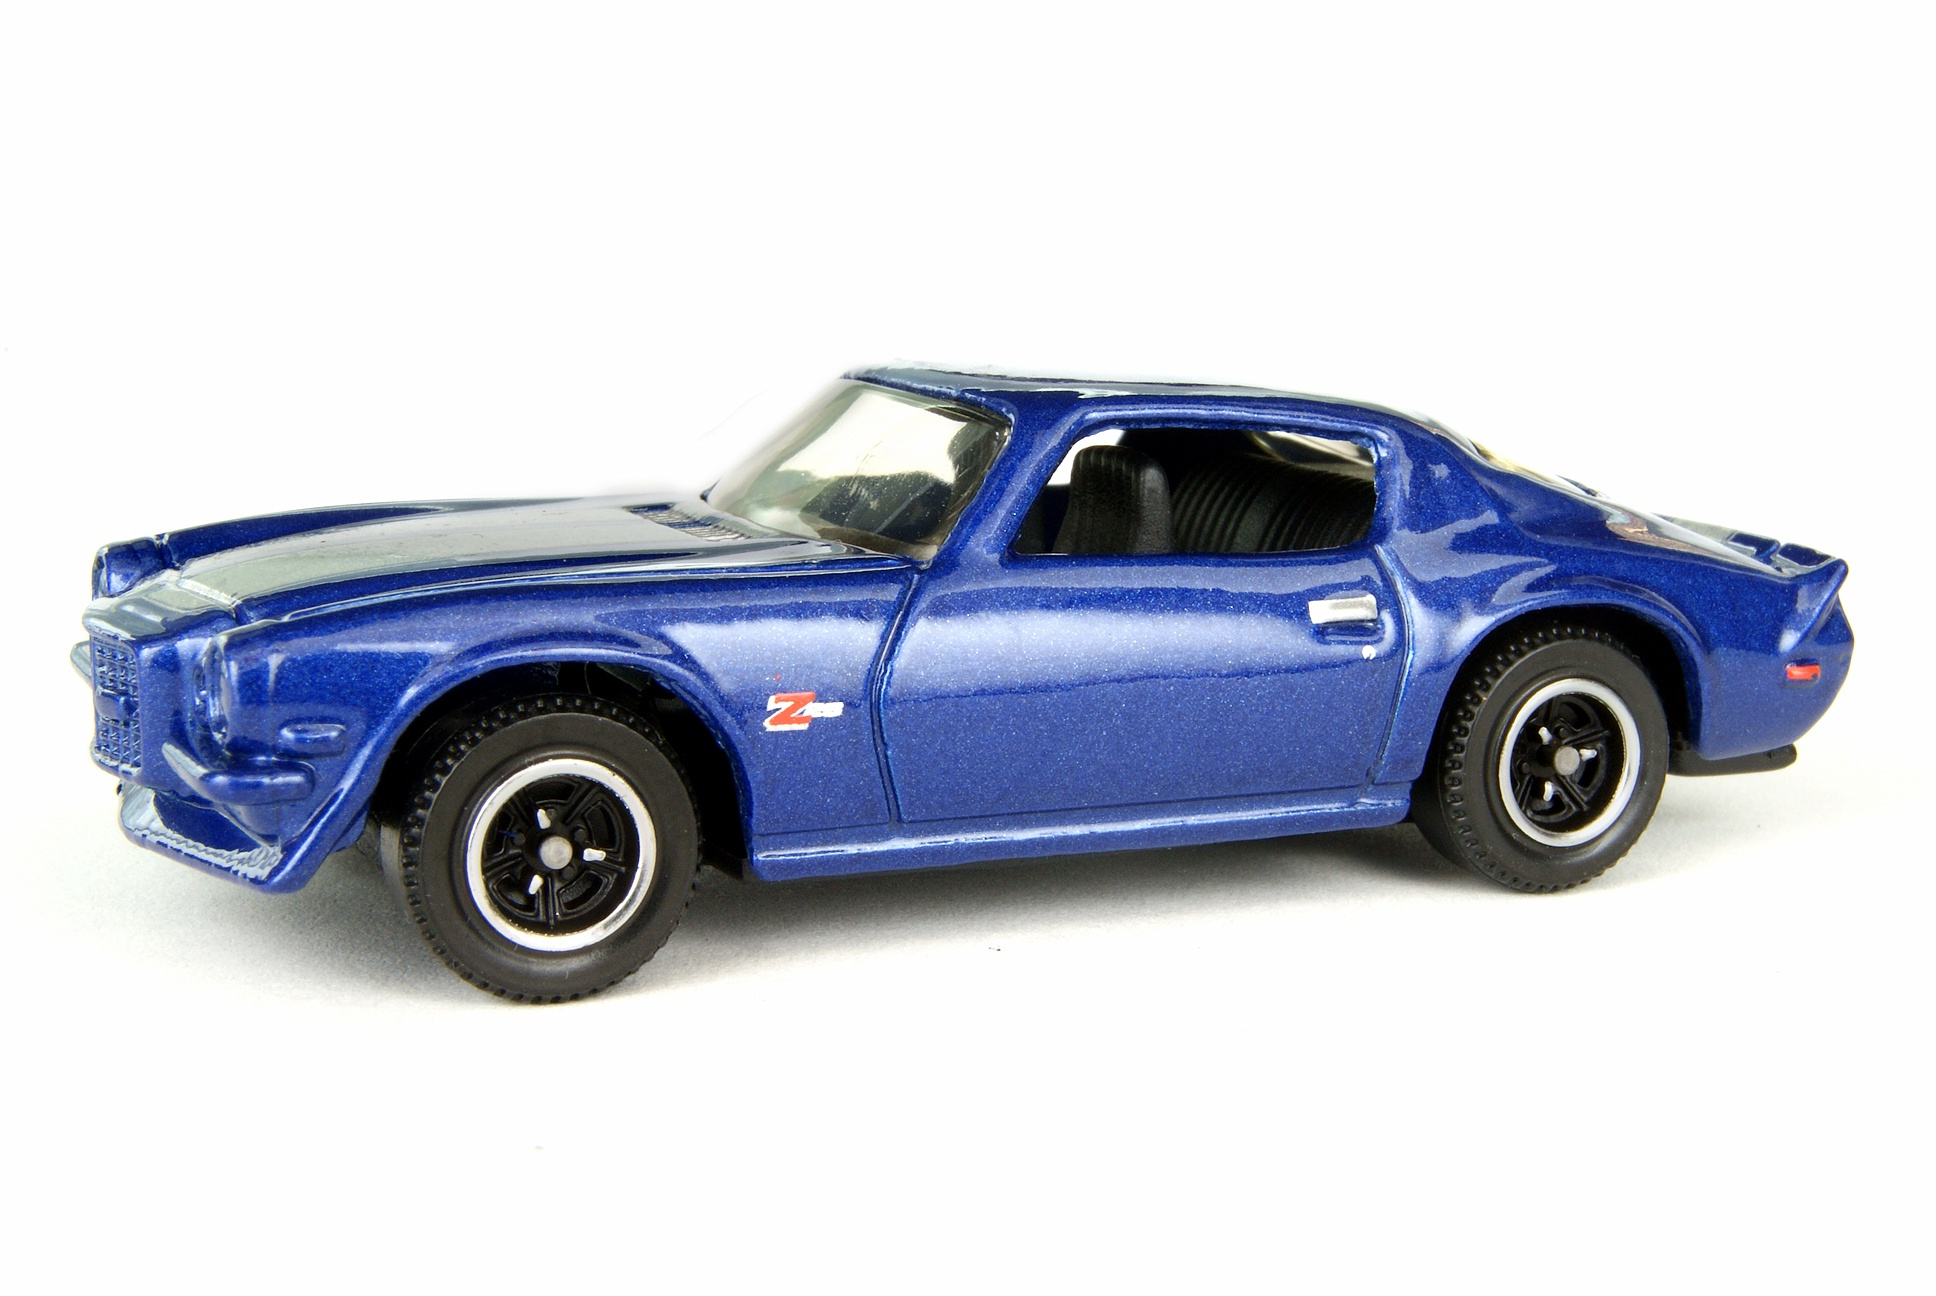 71 Camaro Z 28 Matchbox Cars Wiki Fandom Powered By Wikia